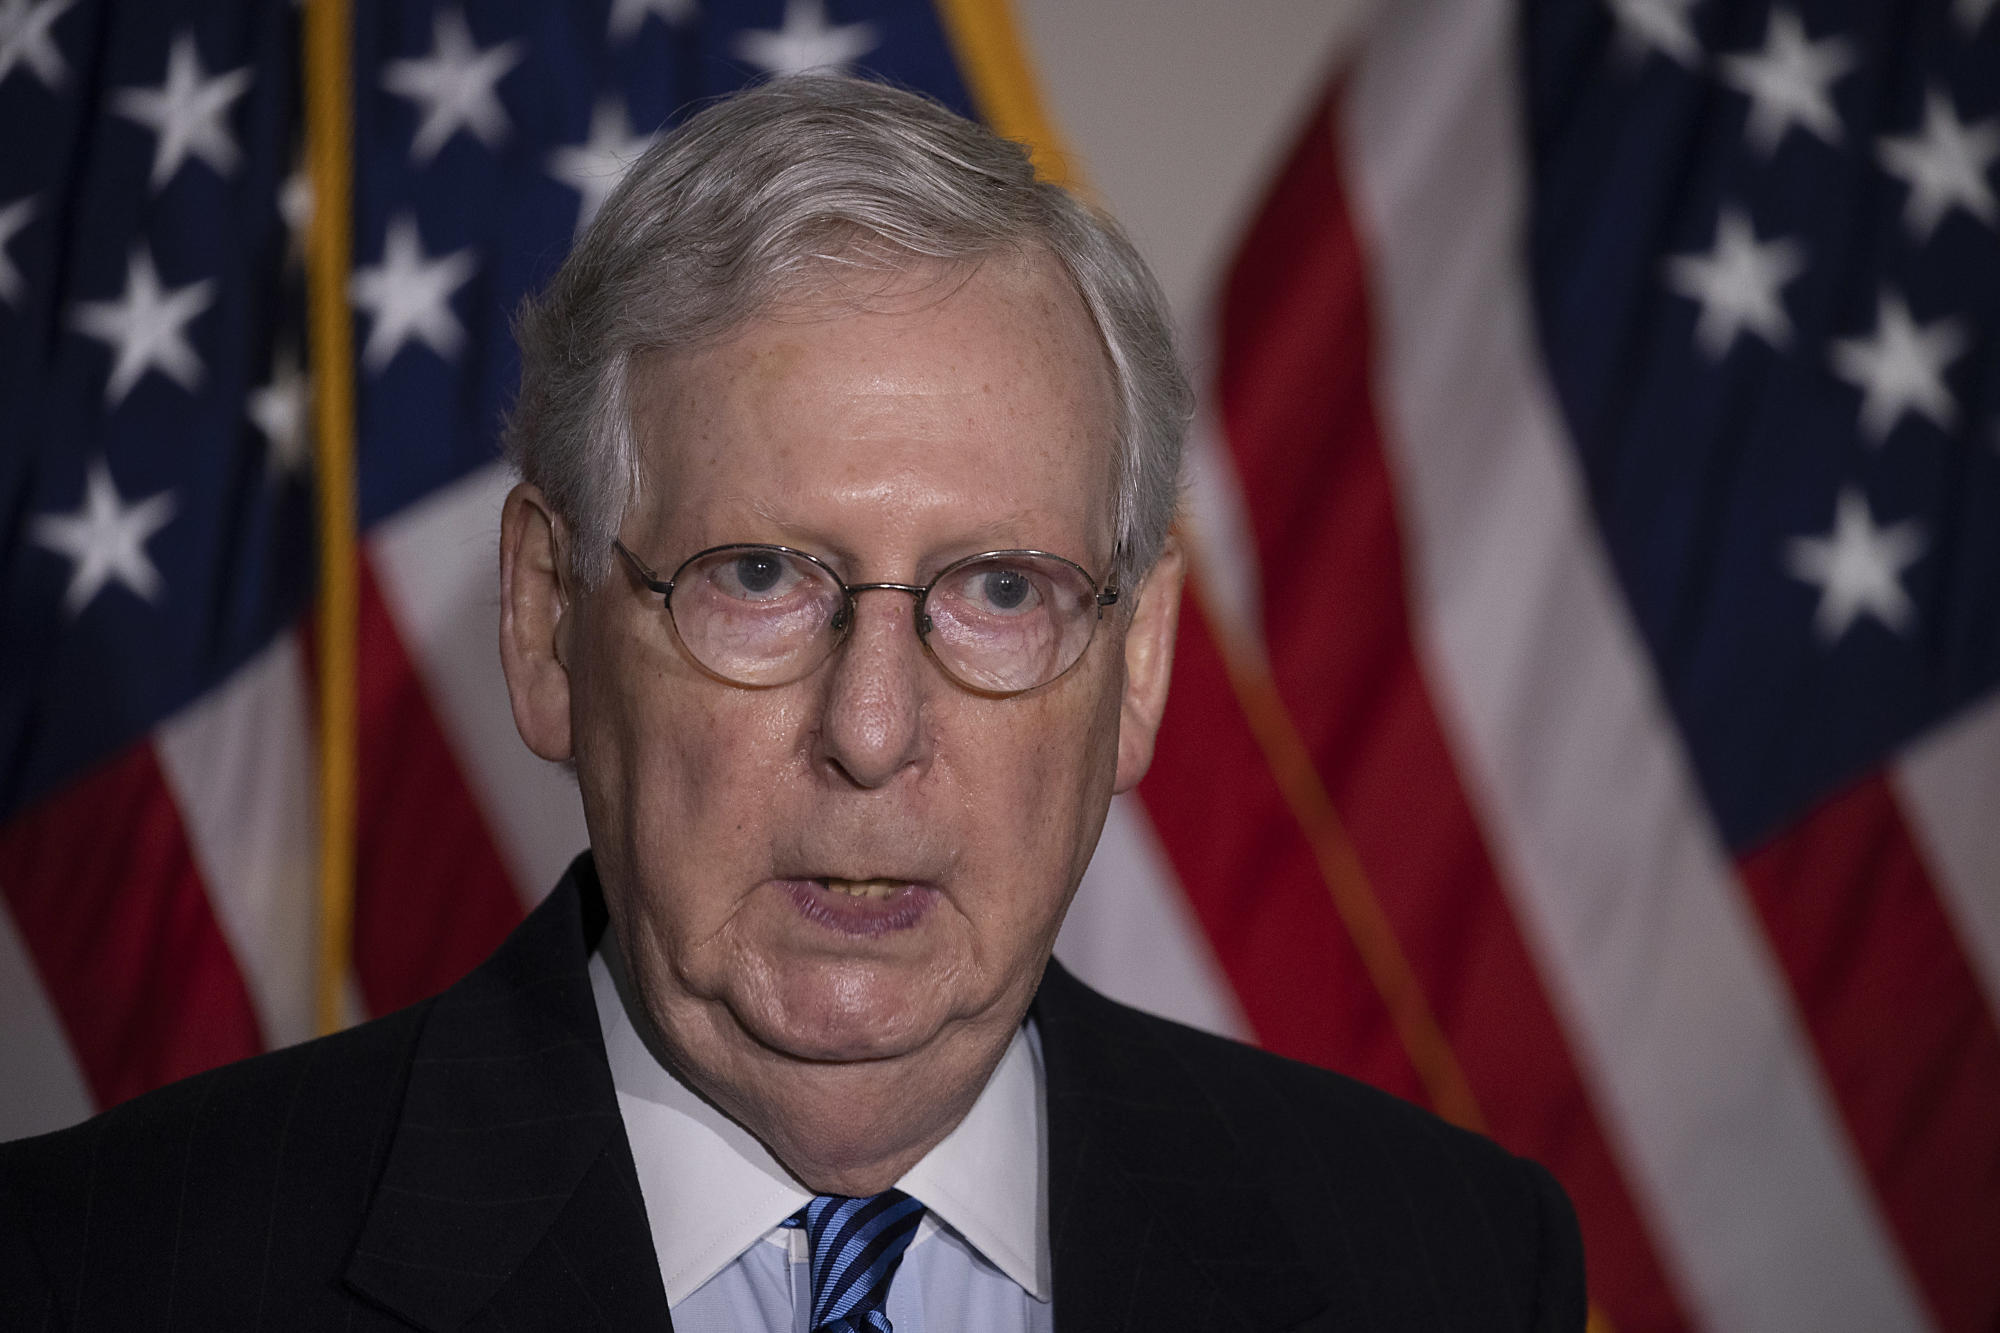 Stimulus update: McConnell and Schumer discuss averting a shutdown and  economic aid